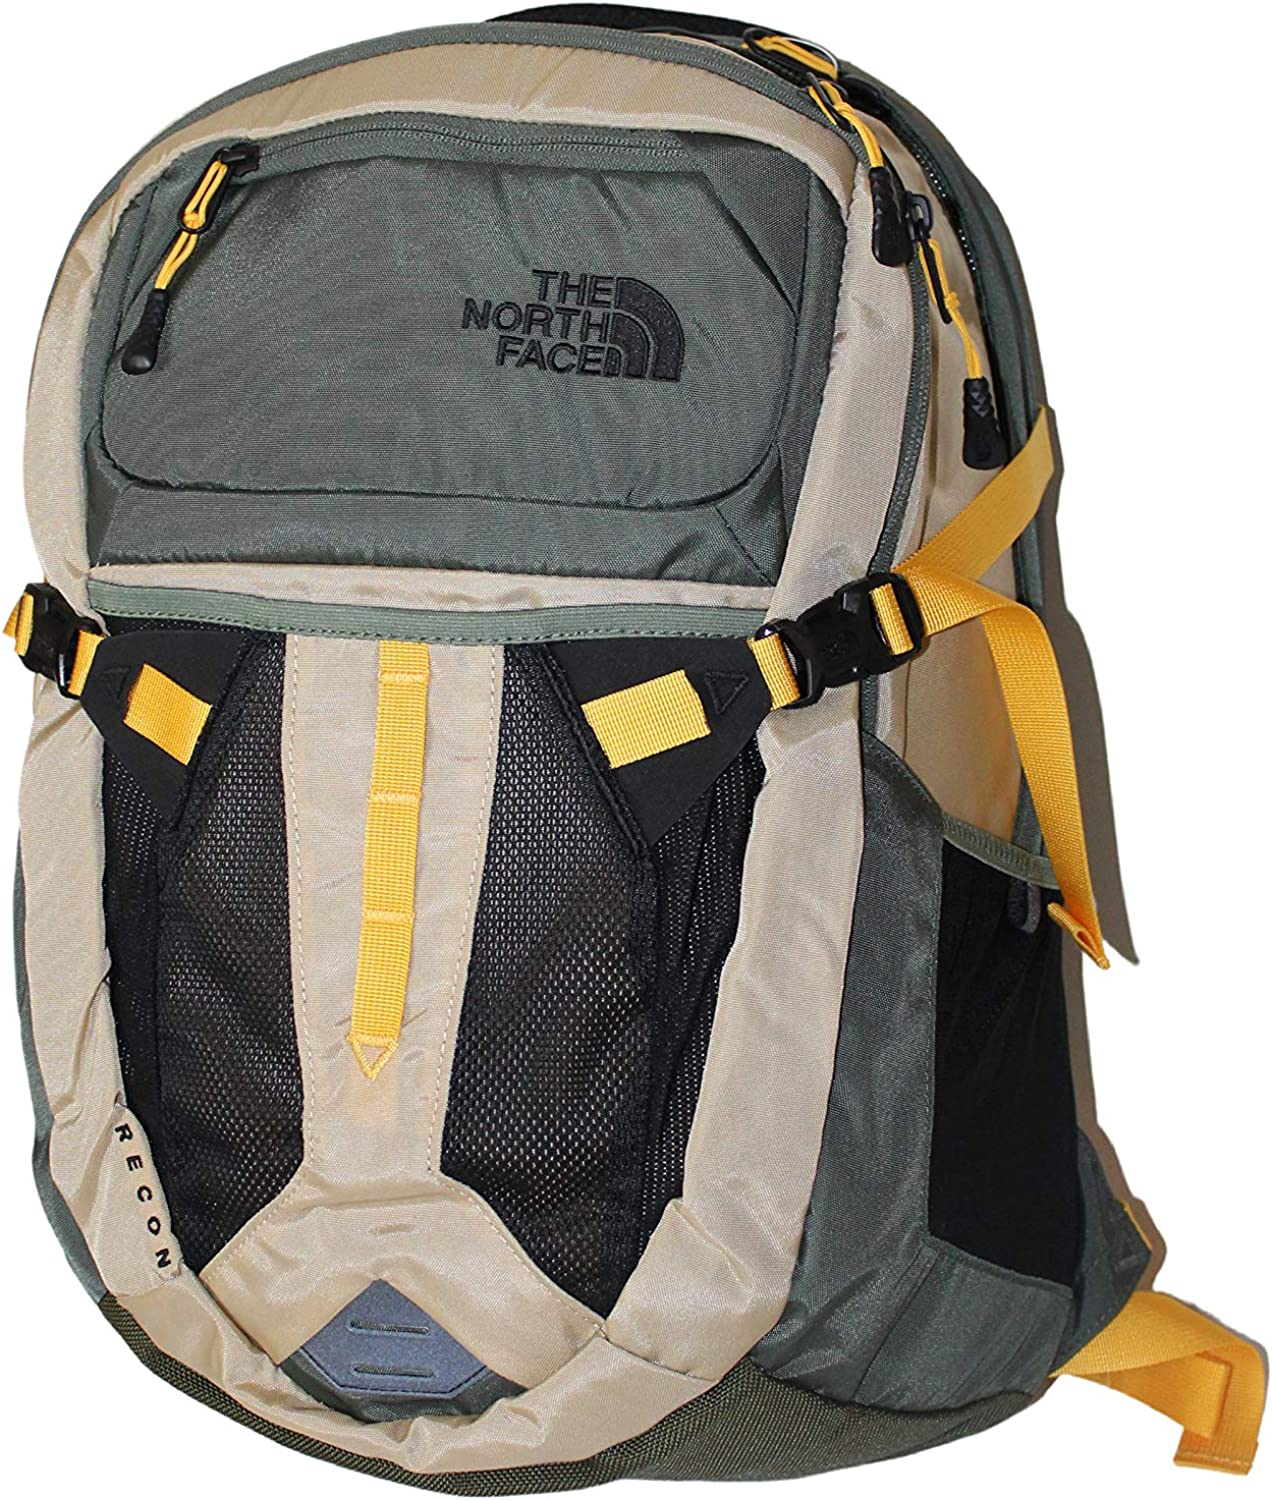 The North Face Unisex Recon 30 Liter Backpack Laptop Student School Bag